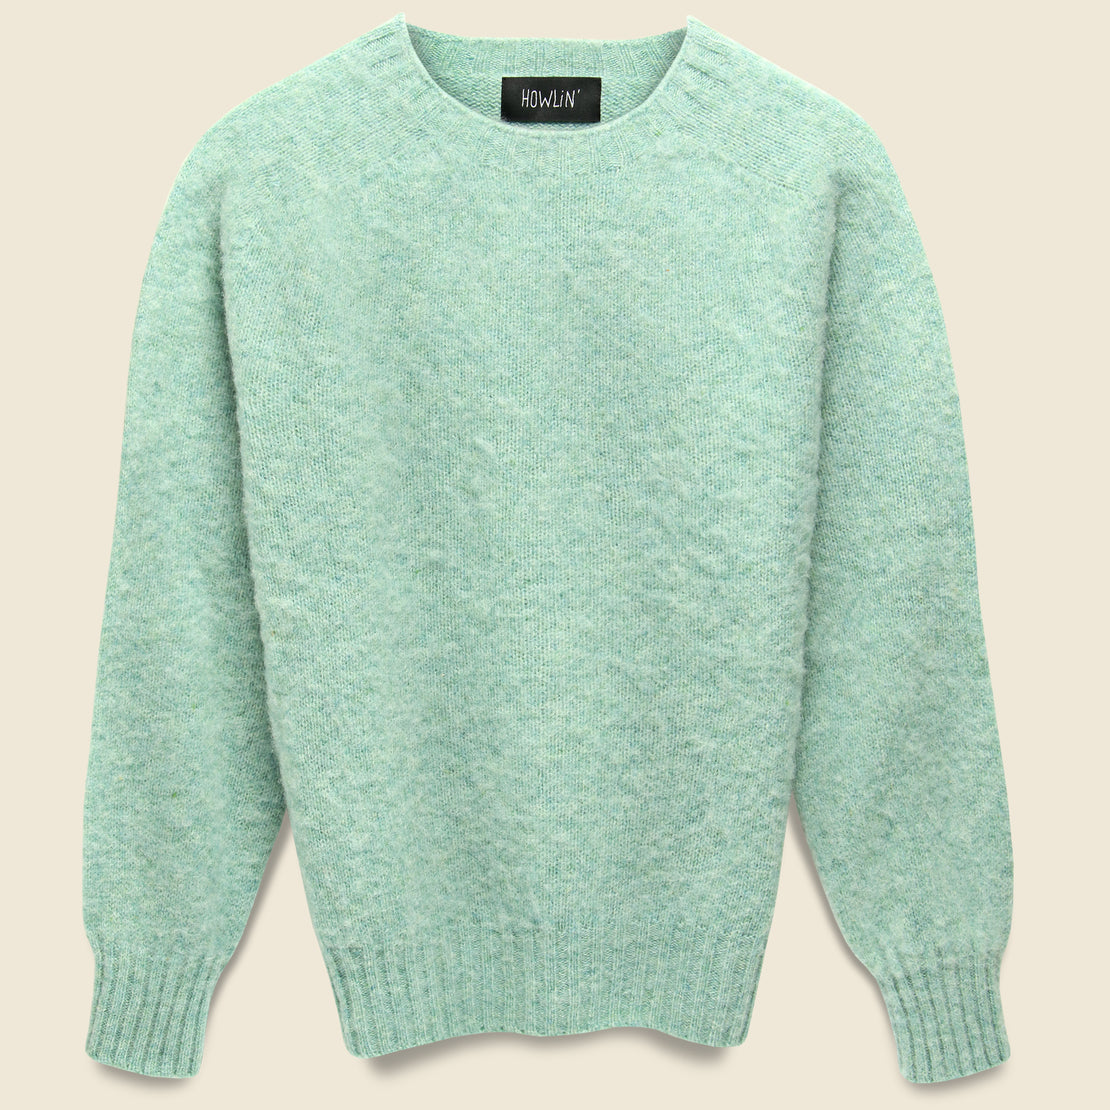 Howlin Babs Sweater - Mint